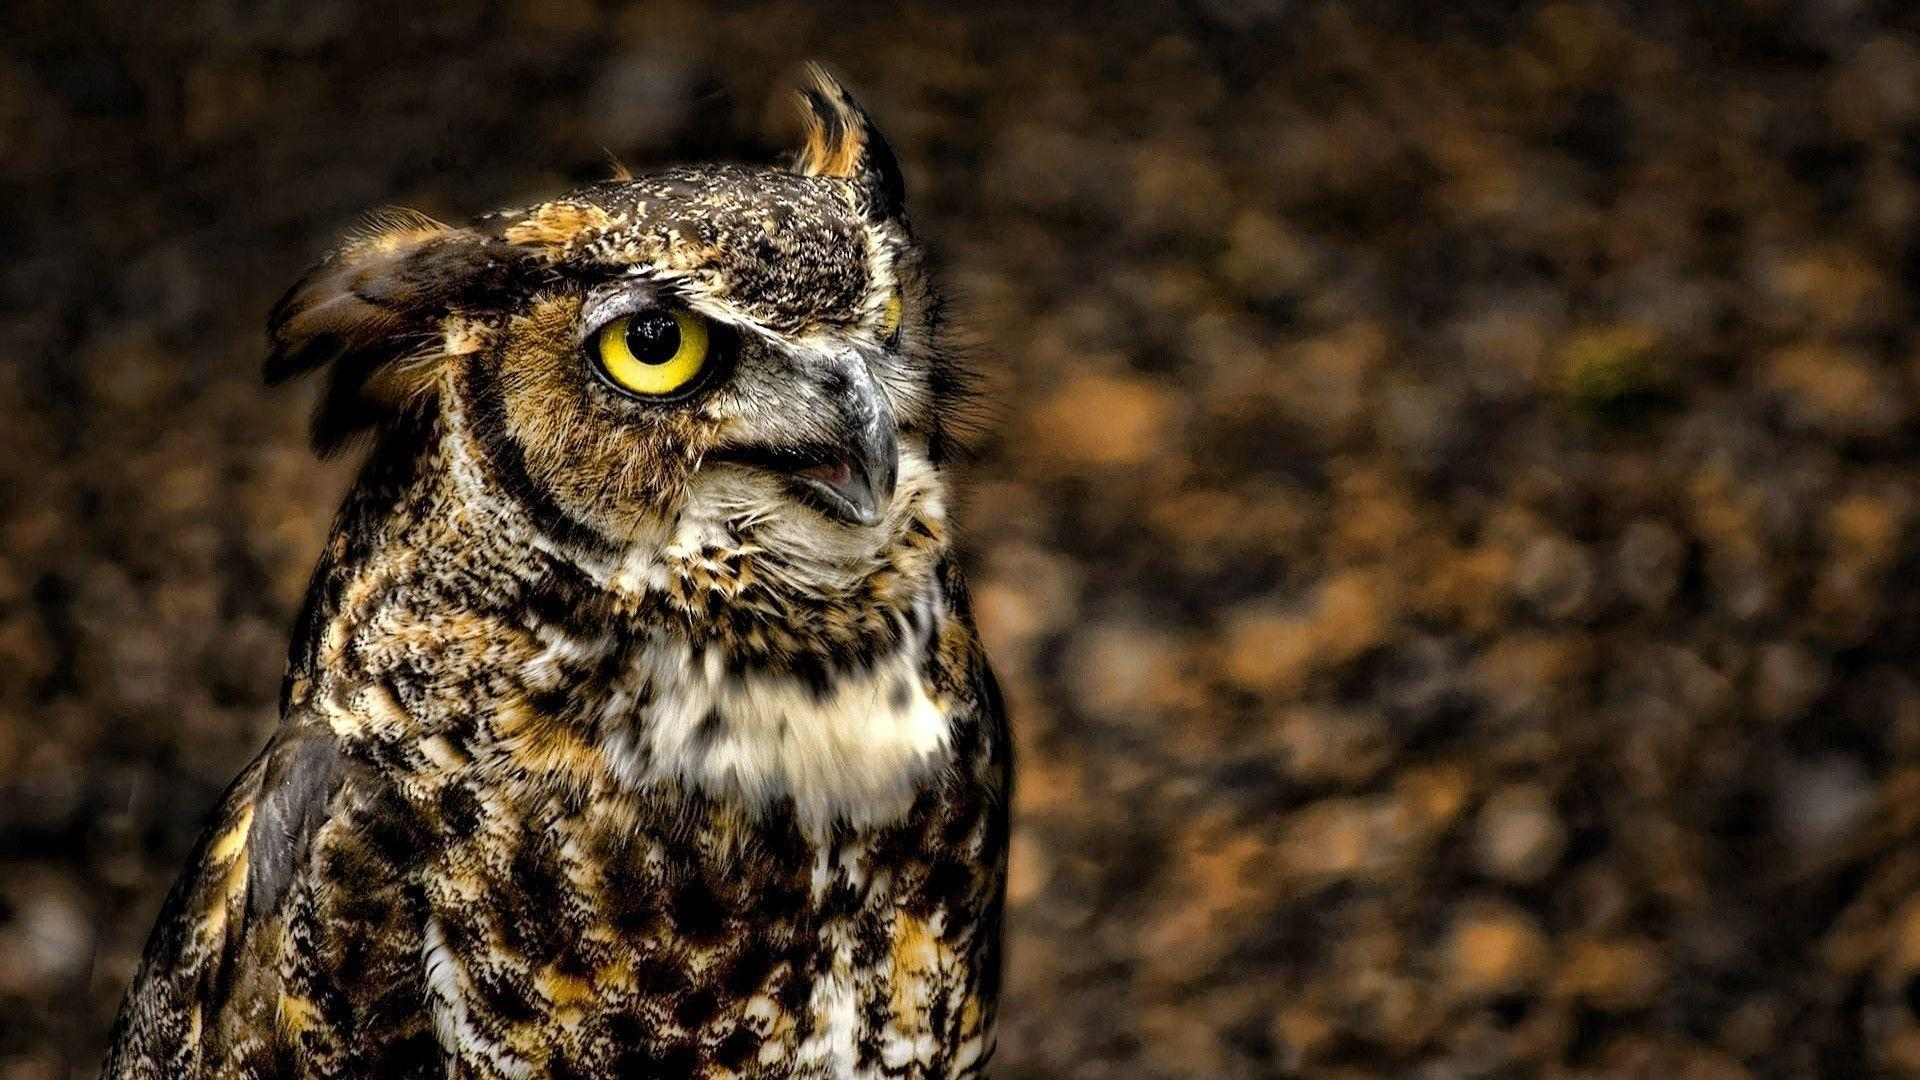 612 Owl Wallpapers | Owl Backgrounds Page 12